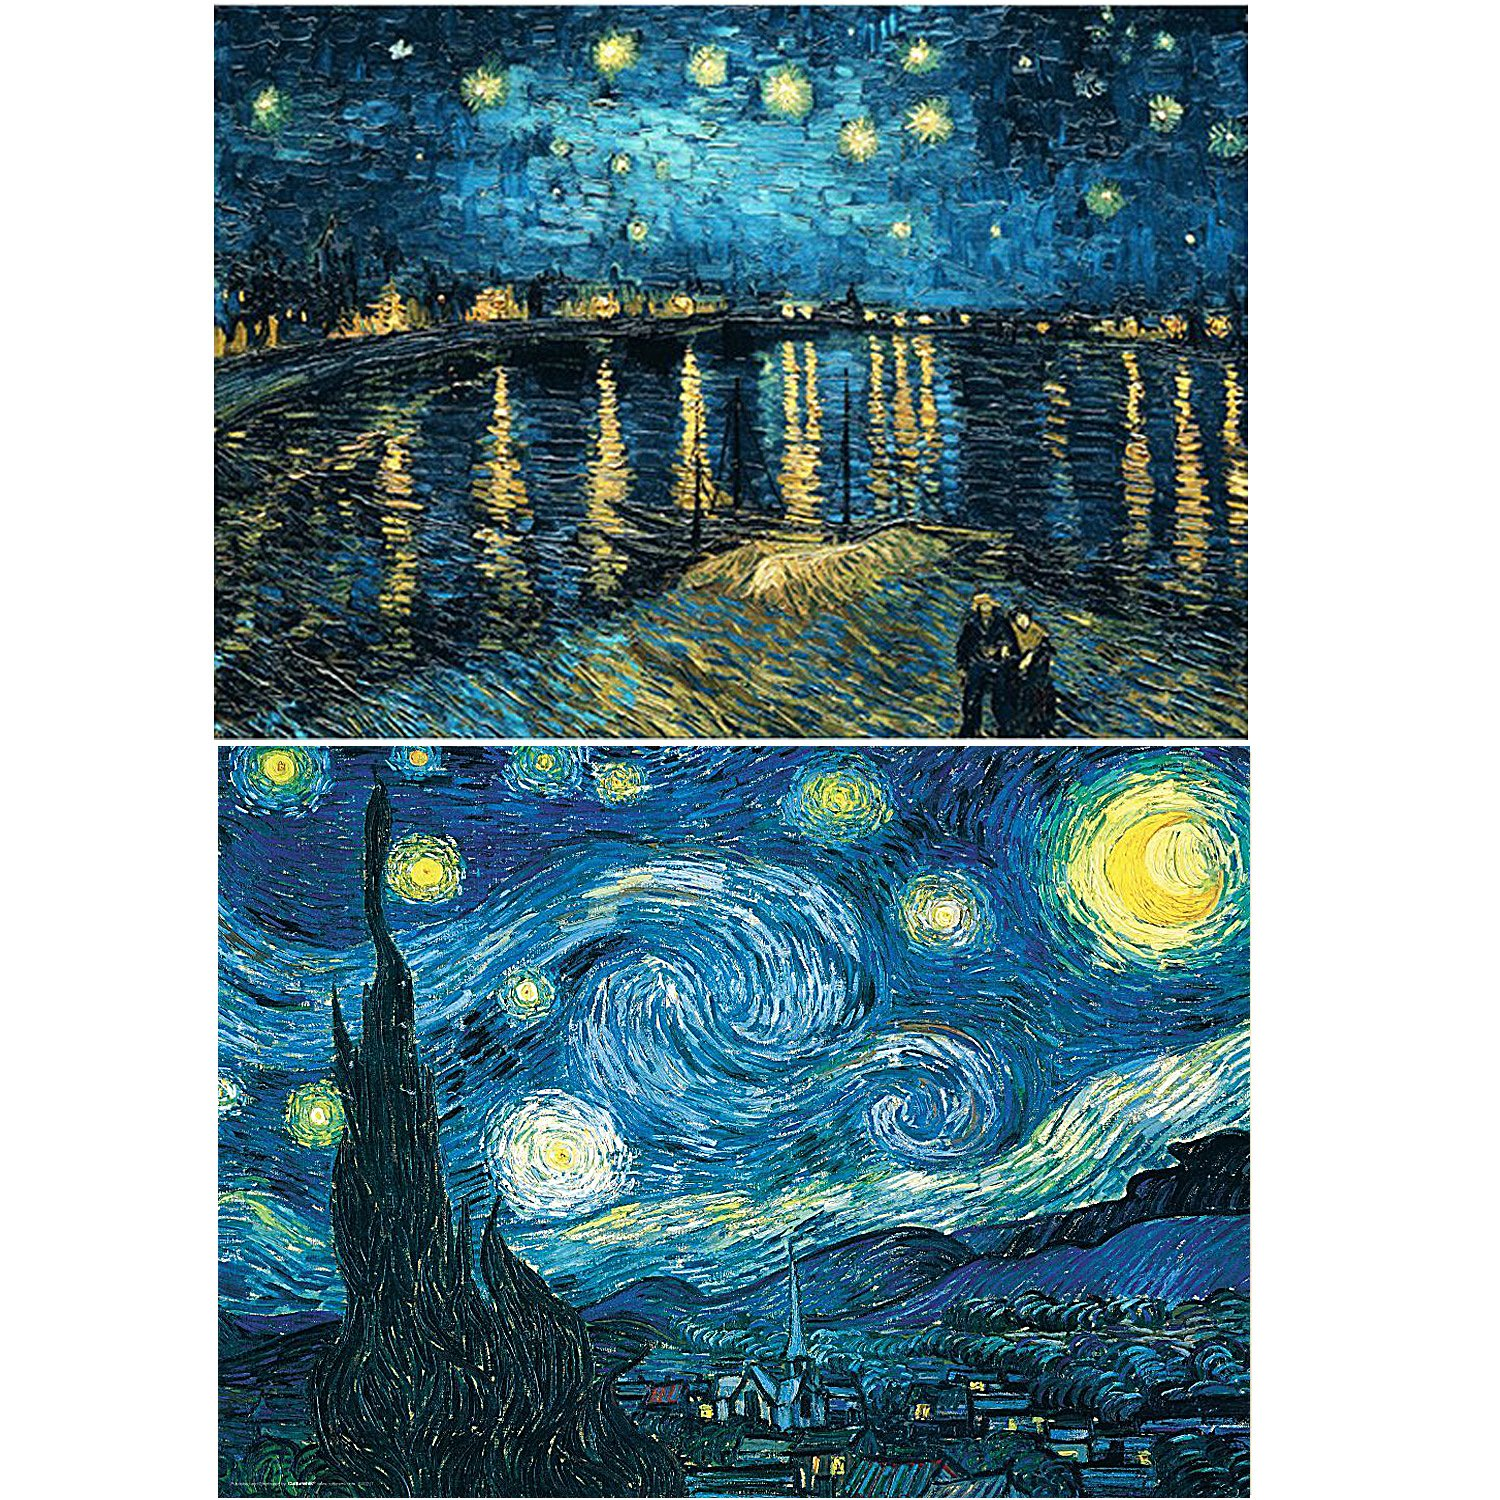 2 Pack 5D DIY Diamond Painting Set Full Drill Diamond Painting Starry Night Wall Stickers for Living Room(40X50CM/16X20inch) BUBBLE